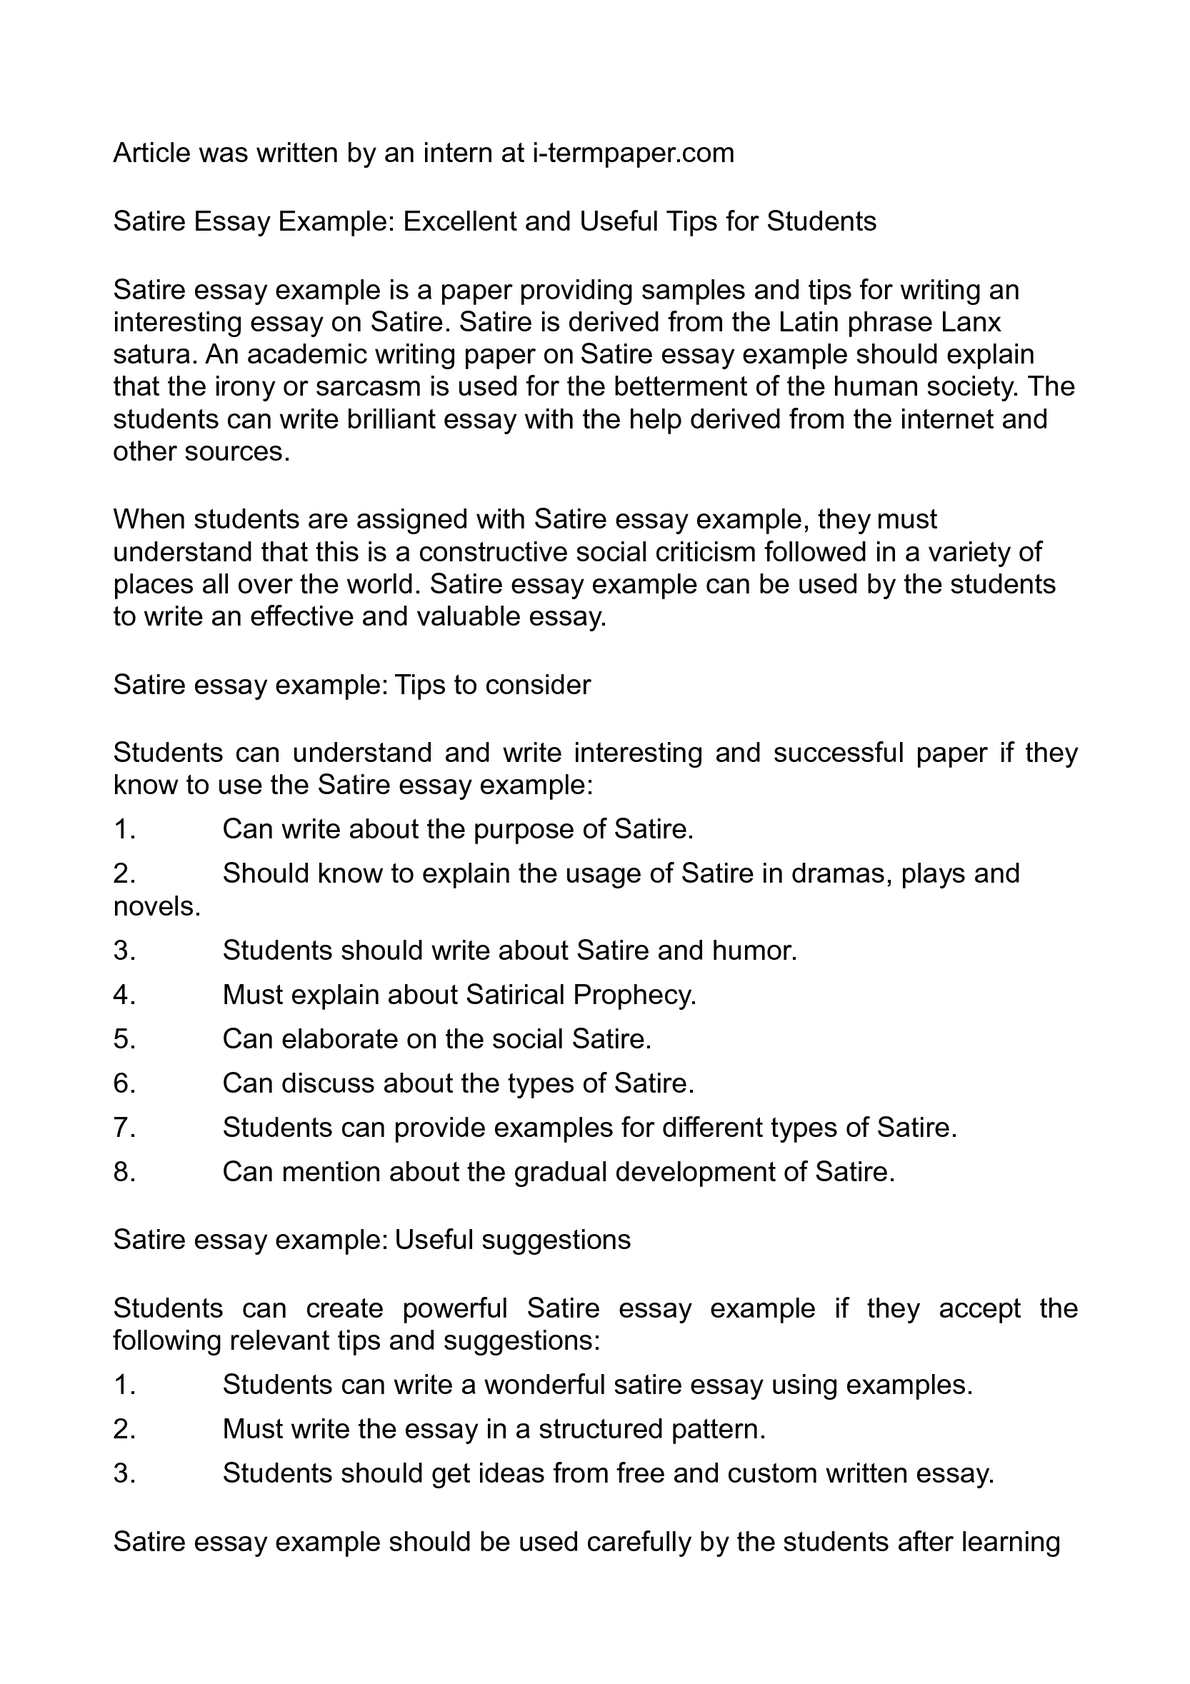 topics for a satire essay satirical essay topics gxart example satirical essay topics gxart orgexamples of satire essay topics topic suggestions statement examples of satire